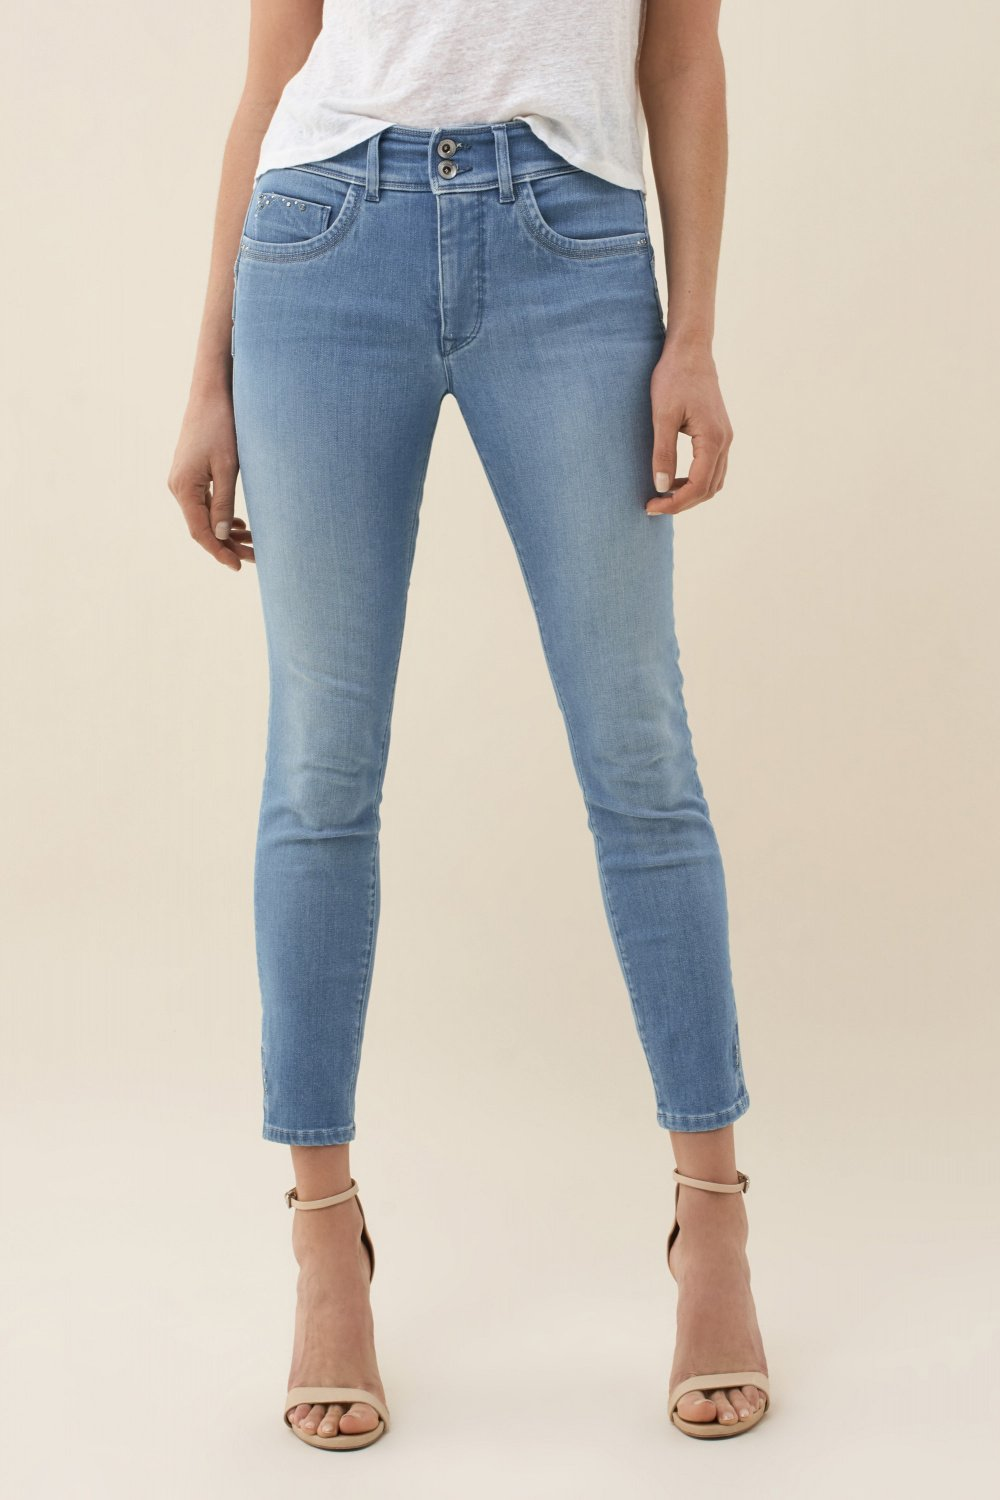 Push In Secret capri jeans with studs - Salsa